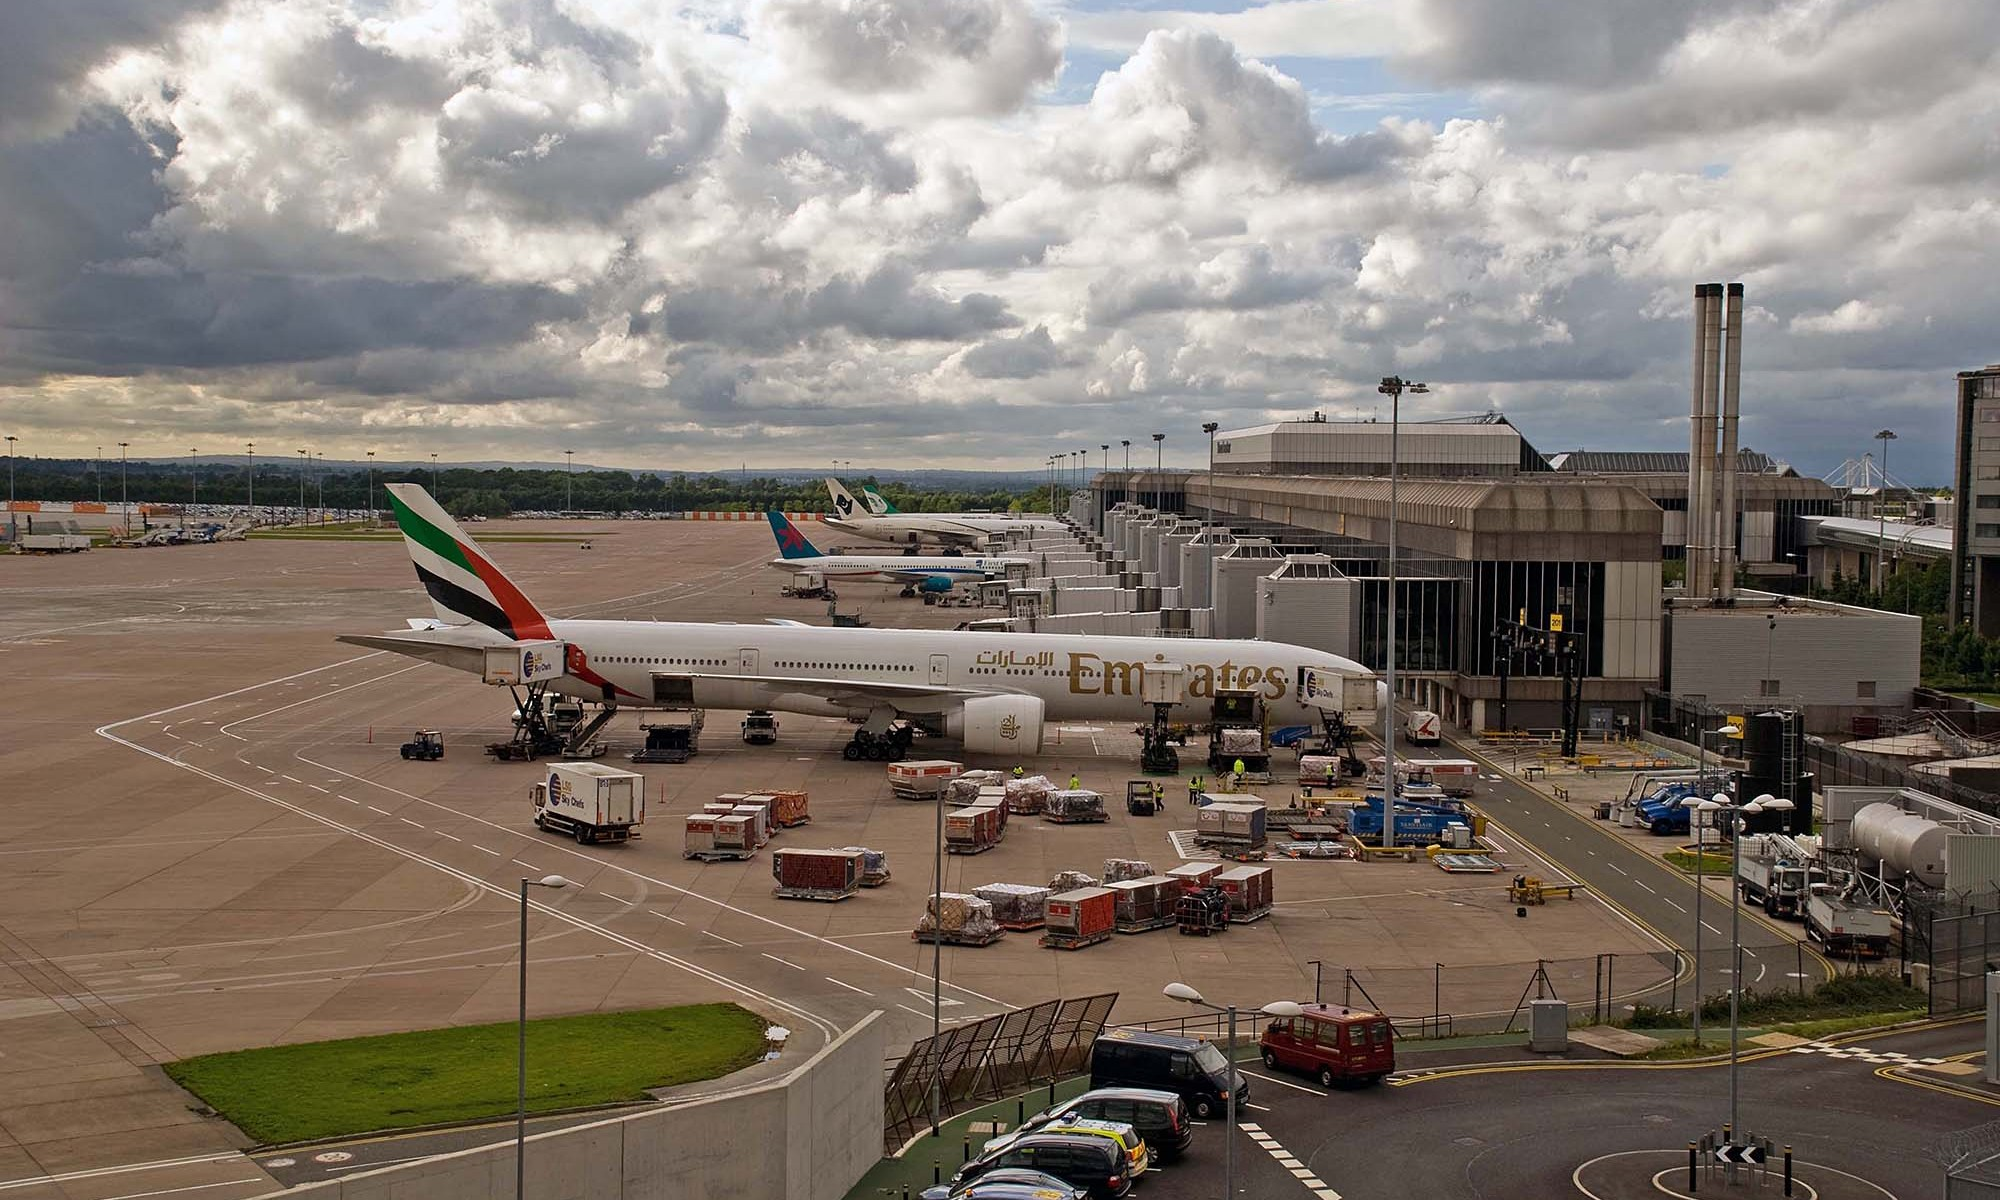 Planes at Terminal 2, Manchester Airport